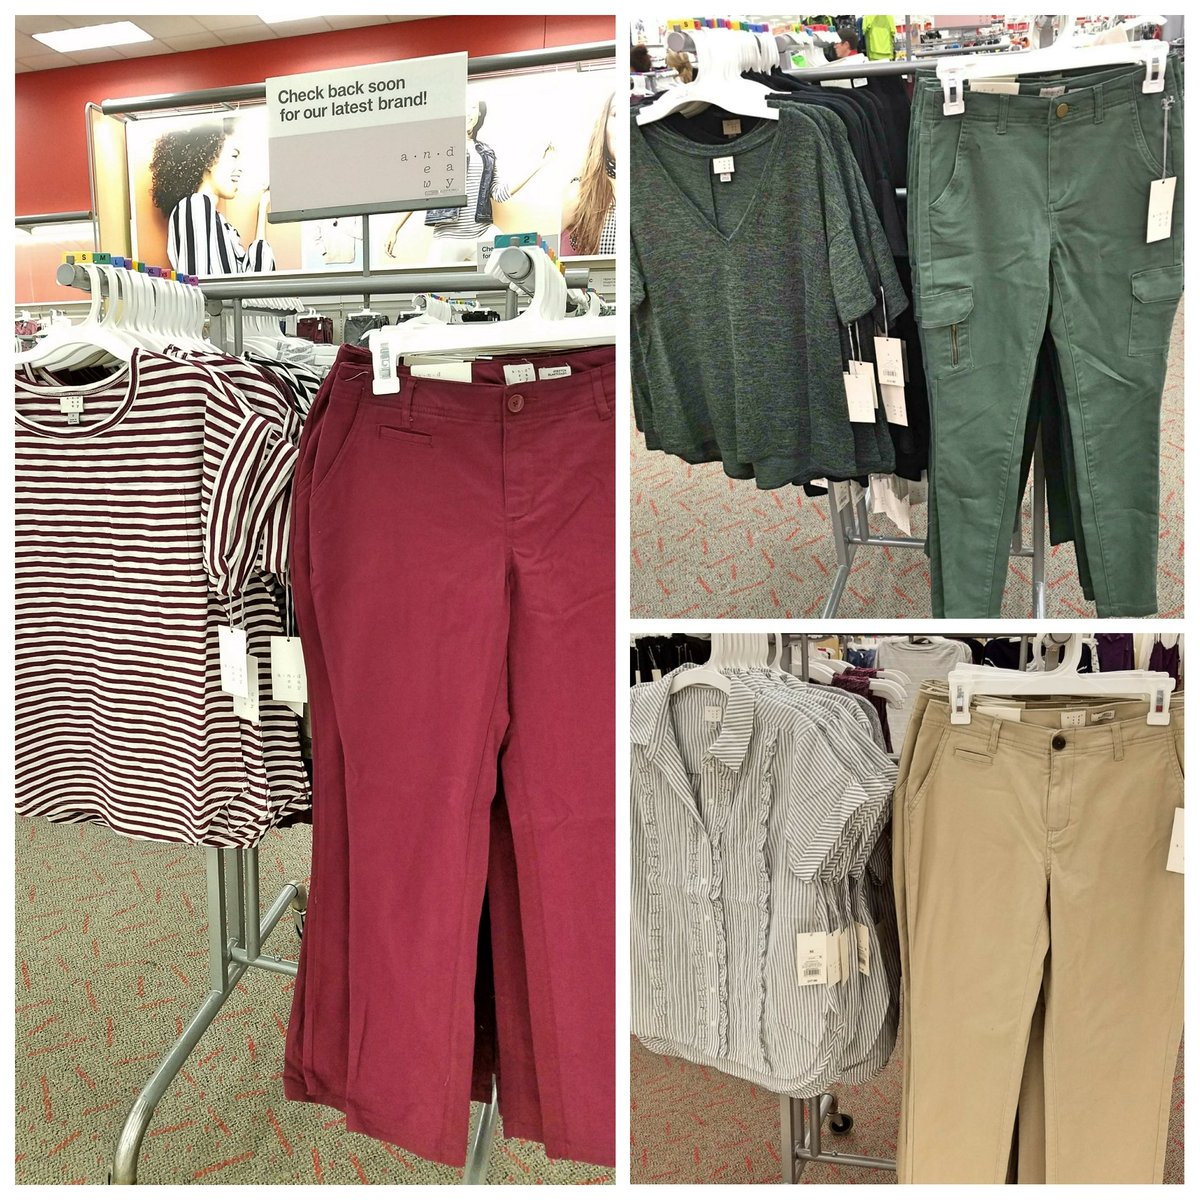 It&#39;s &quot;A New Day&quot; at League City Target! Come check out the early release of our new Target exclusive brand! #T2320ModelStore #D303 #G392 <br>http://pic.twitter.com/VjFhO8HsJQ